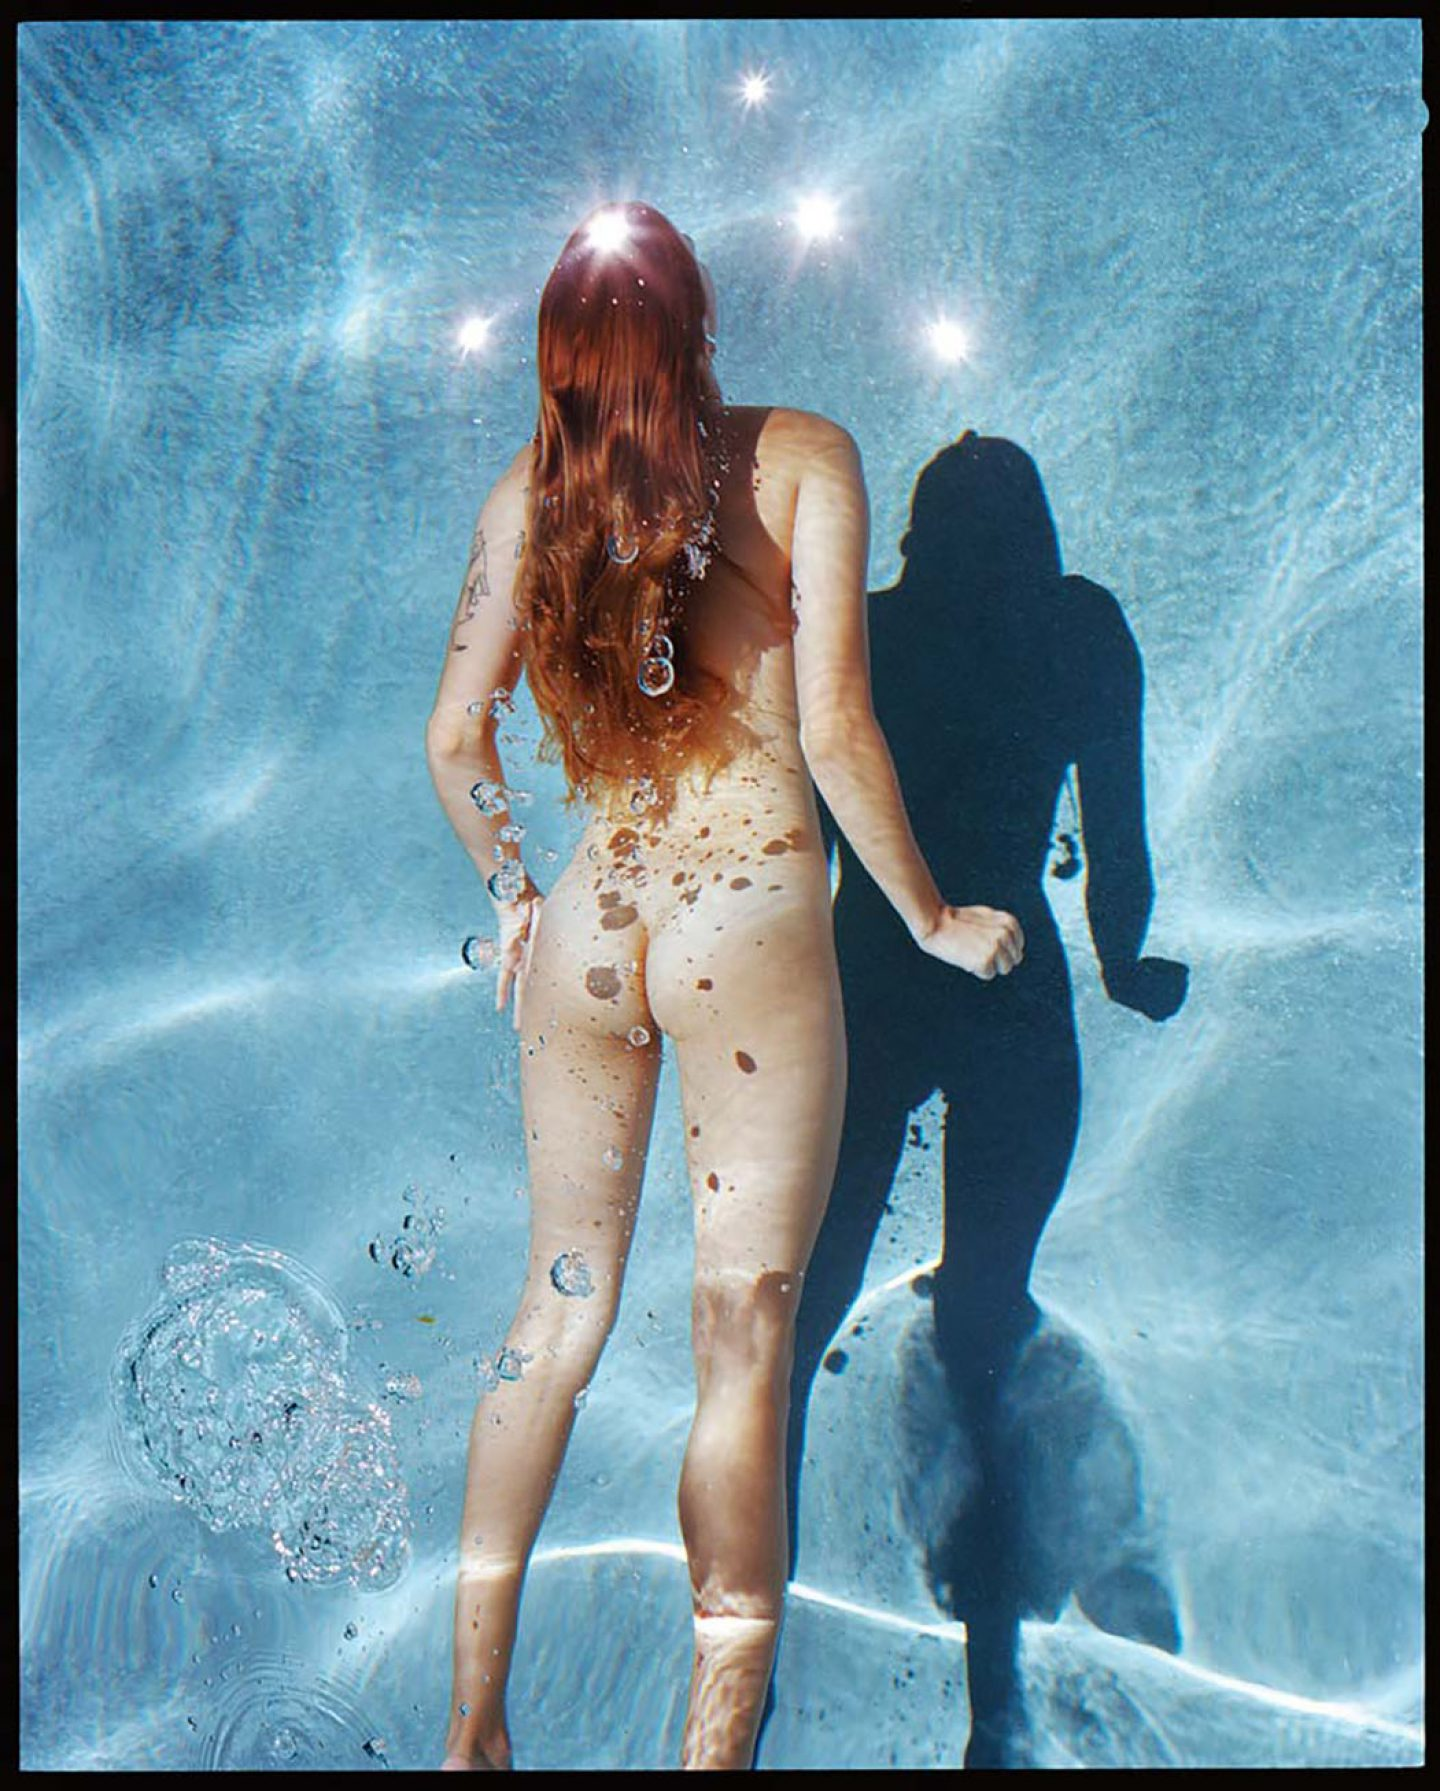 iGNANT_Photography_Deanna_Templeton_The_Swimming_Pool_7